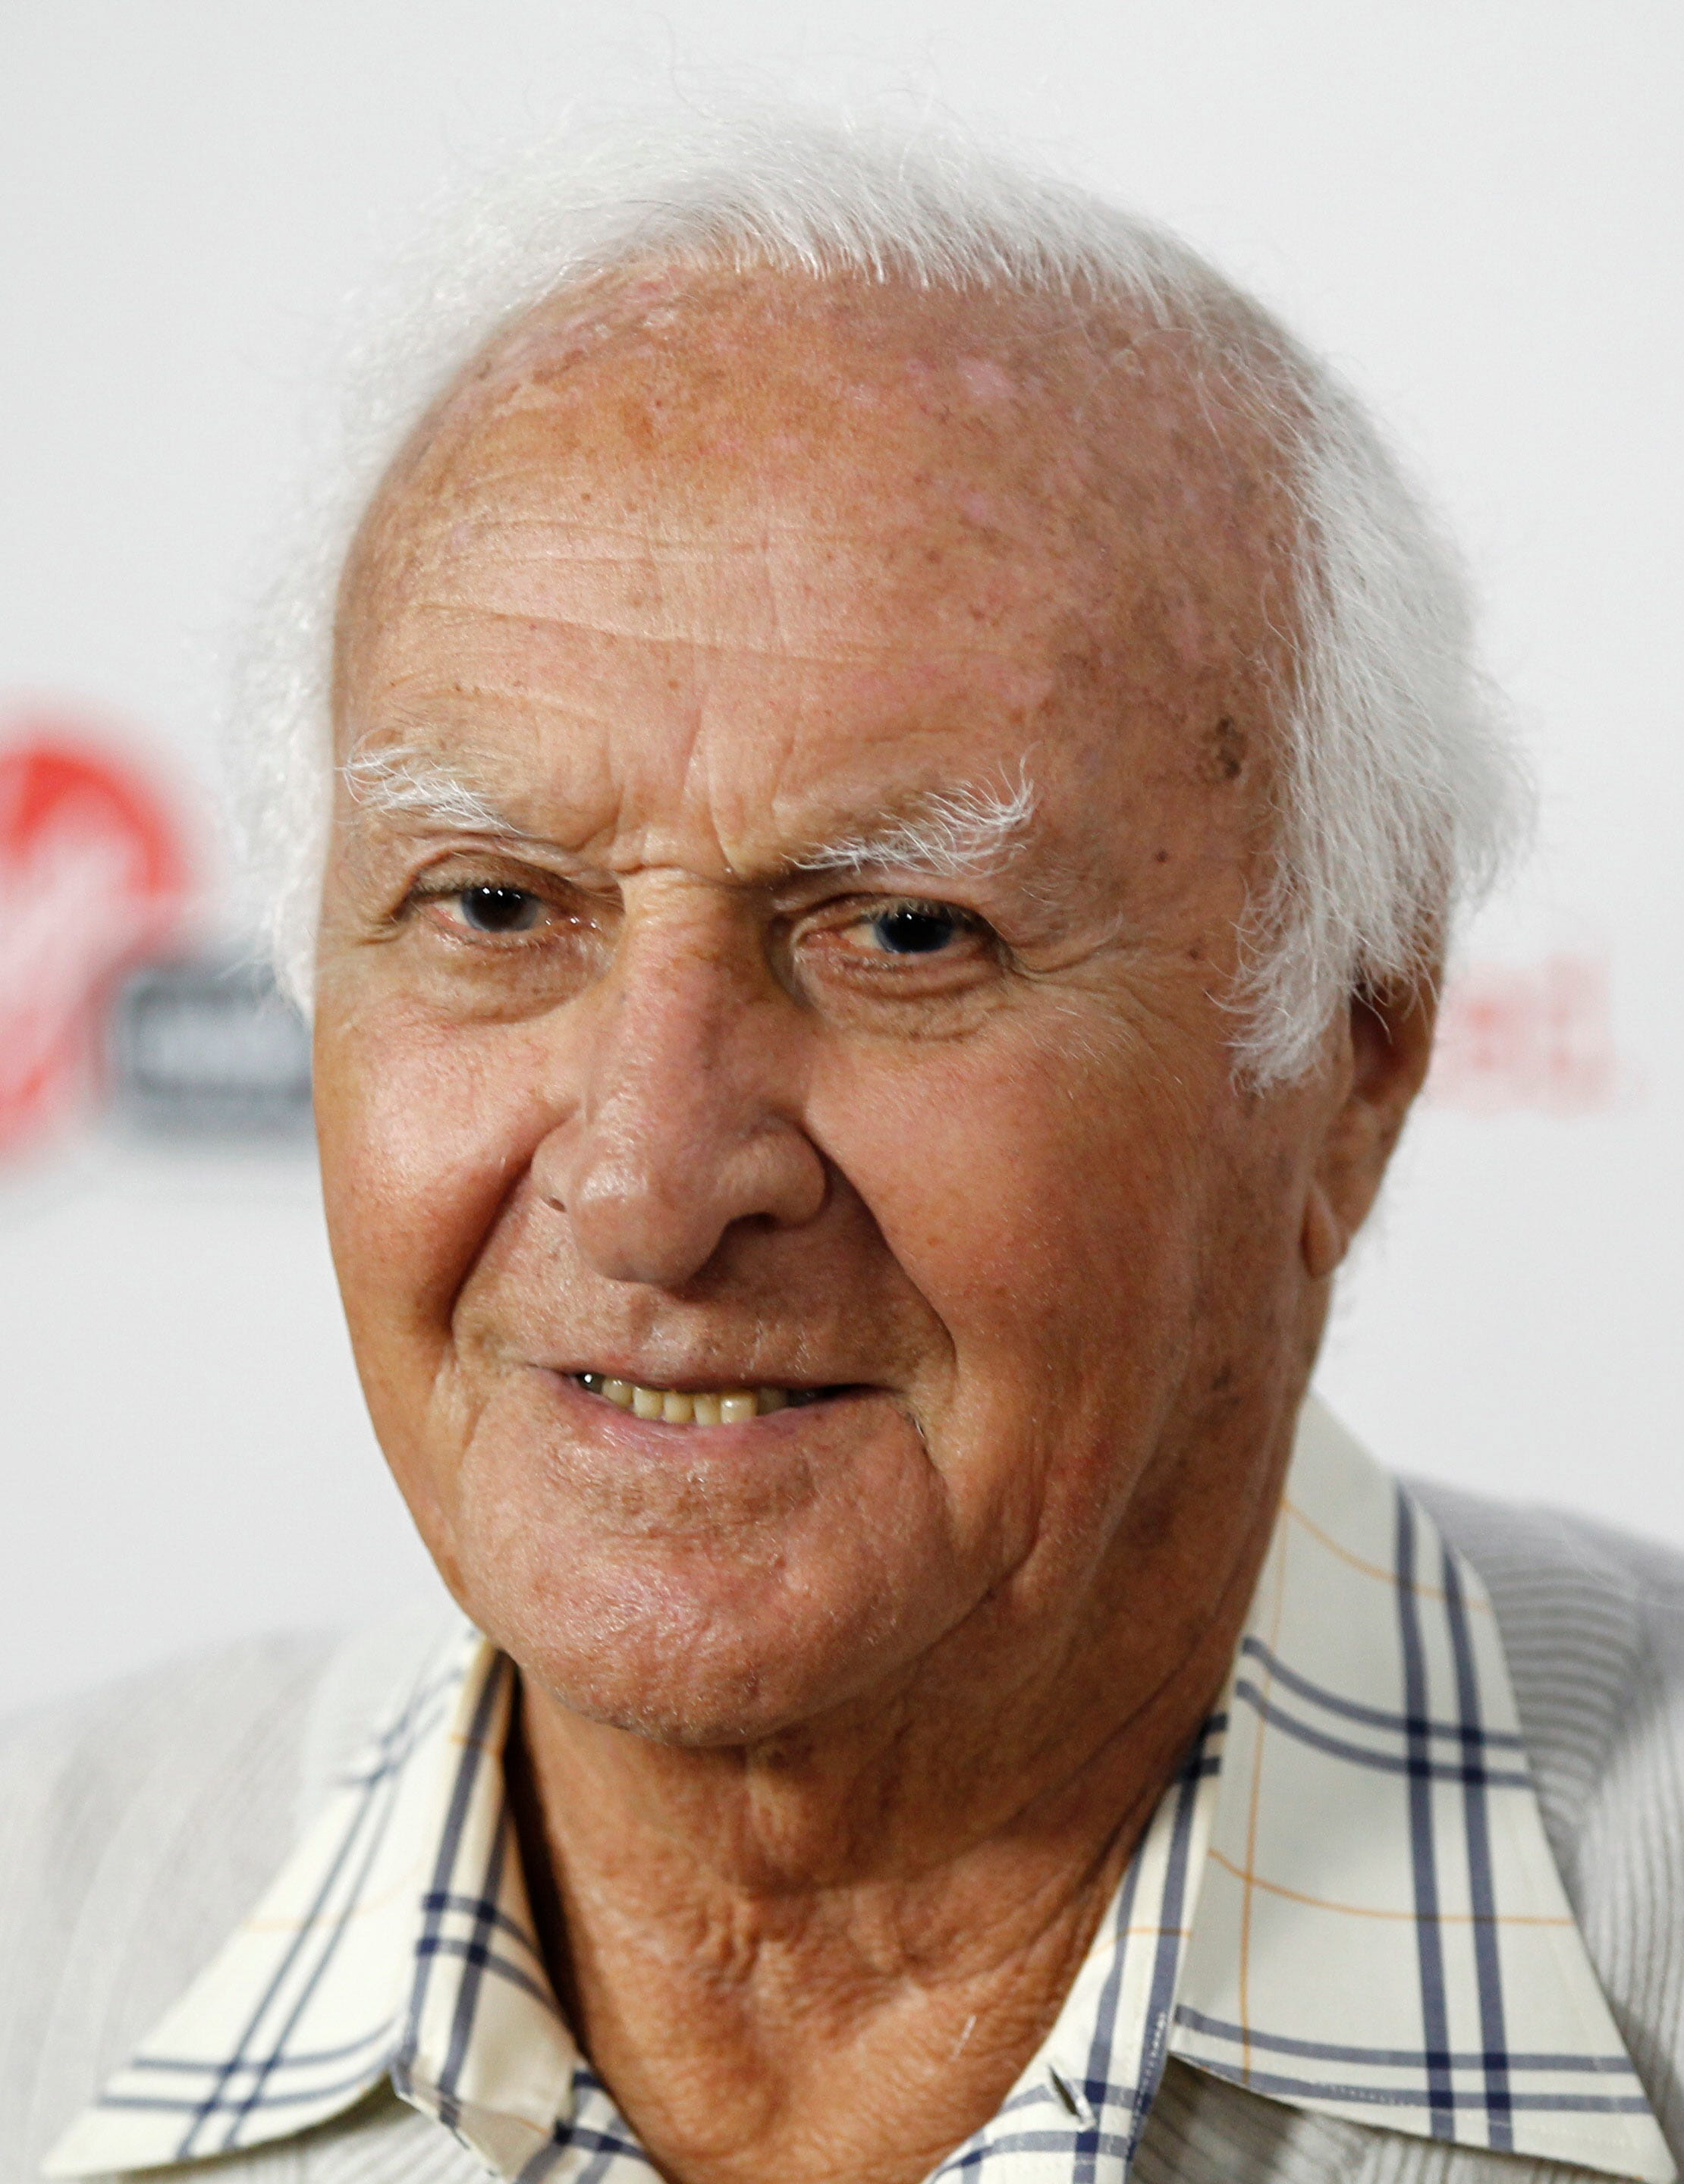 robert loggia died